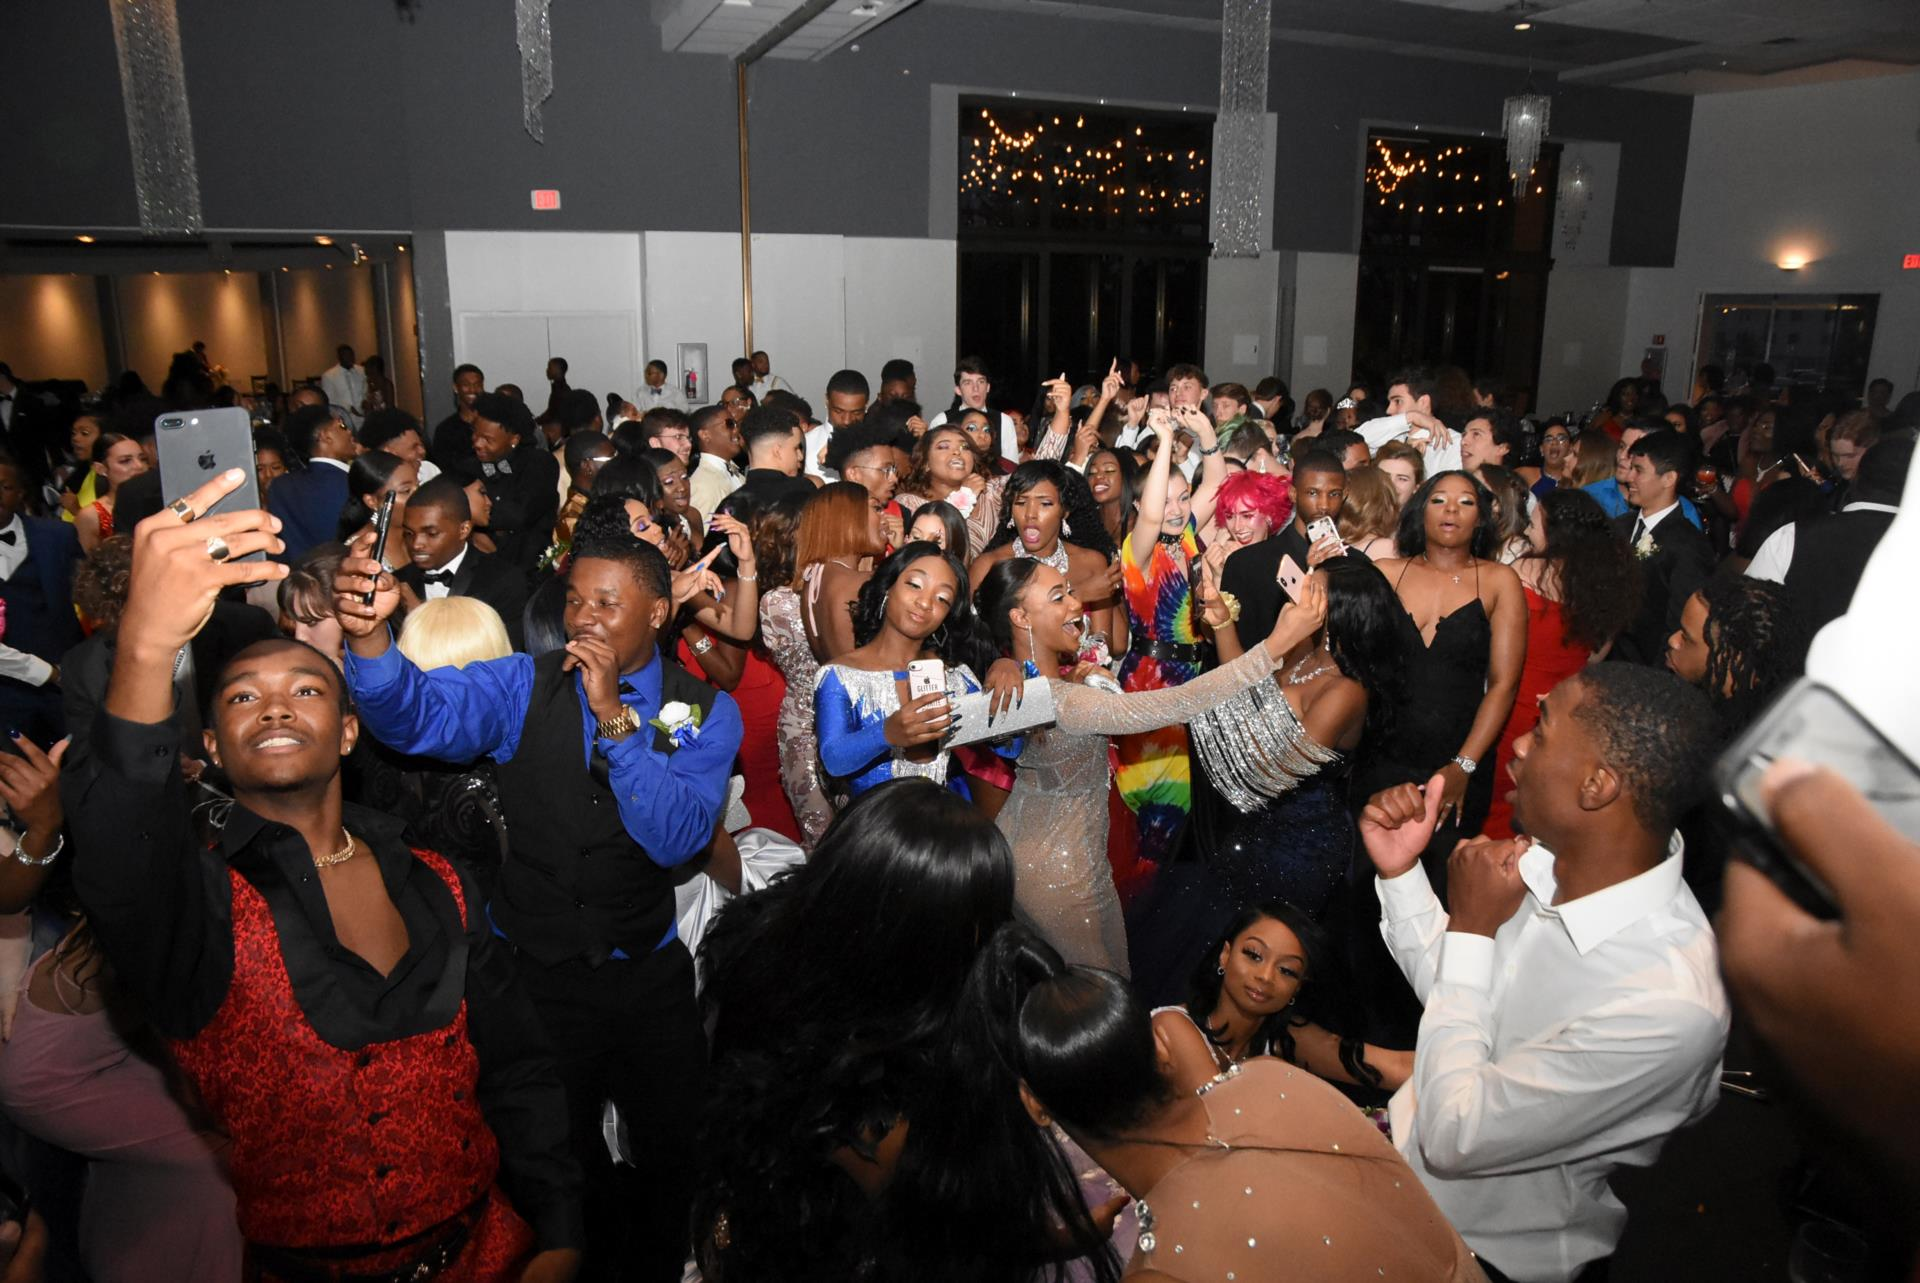 Group of kids dancing at prom